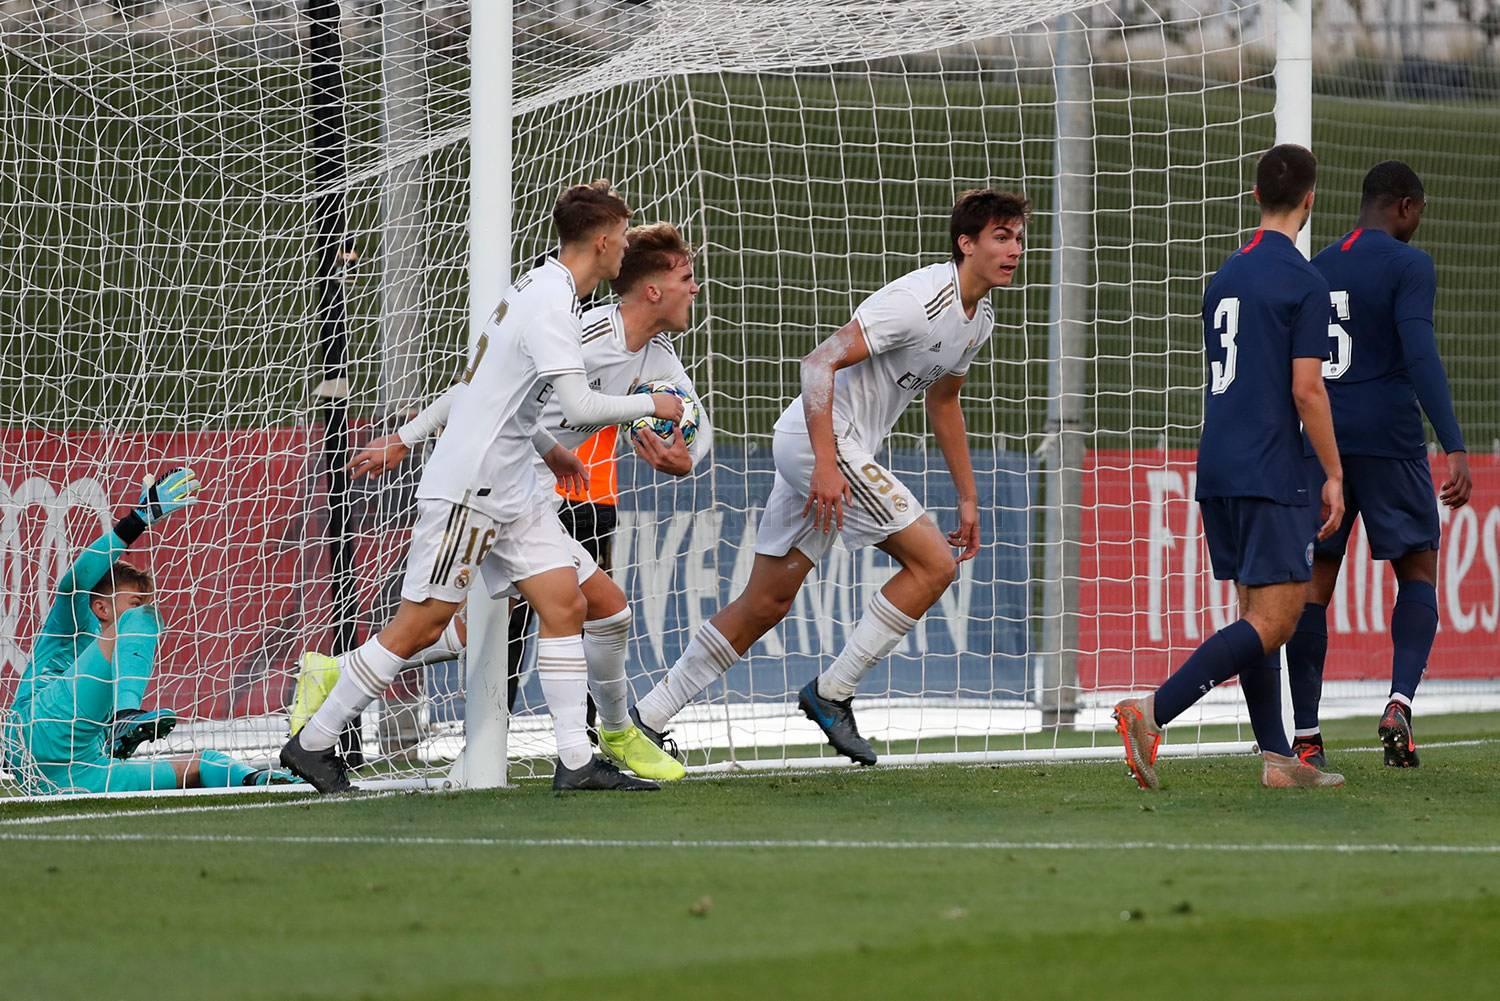 Real Madrid - Juvenil A - PSG - 26-11-2019